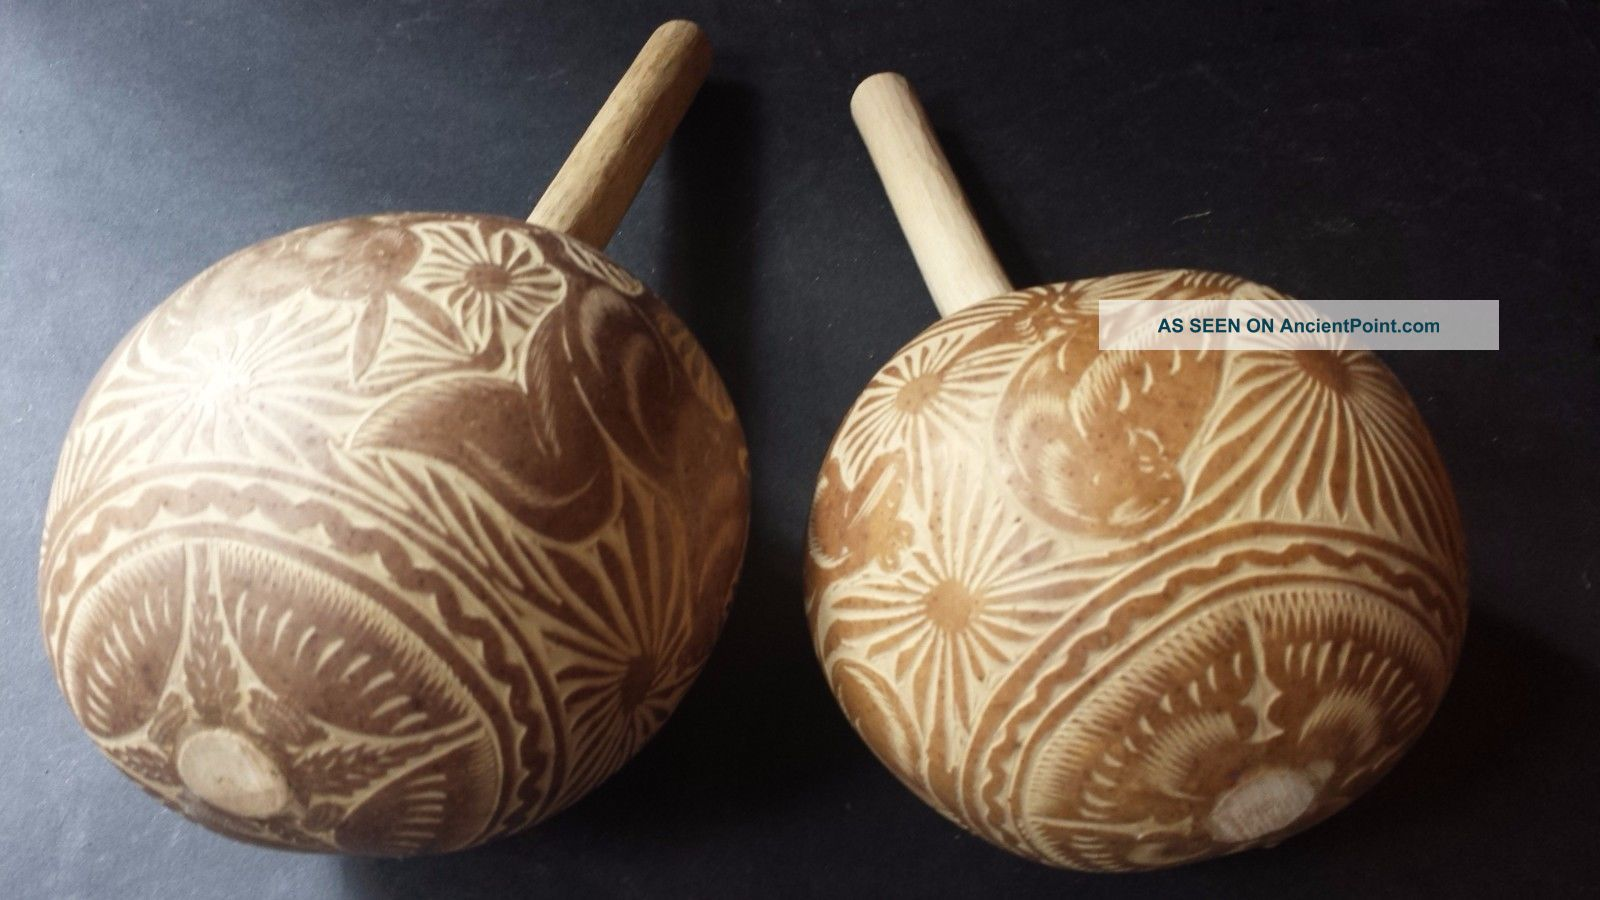 Mexican Shamanic Maracas Shakers Native Ethnic Musical Percussion Art Instrument Percussion photo